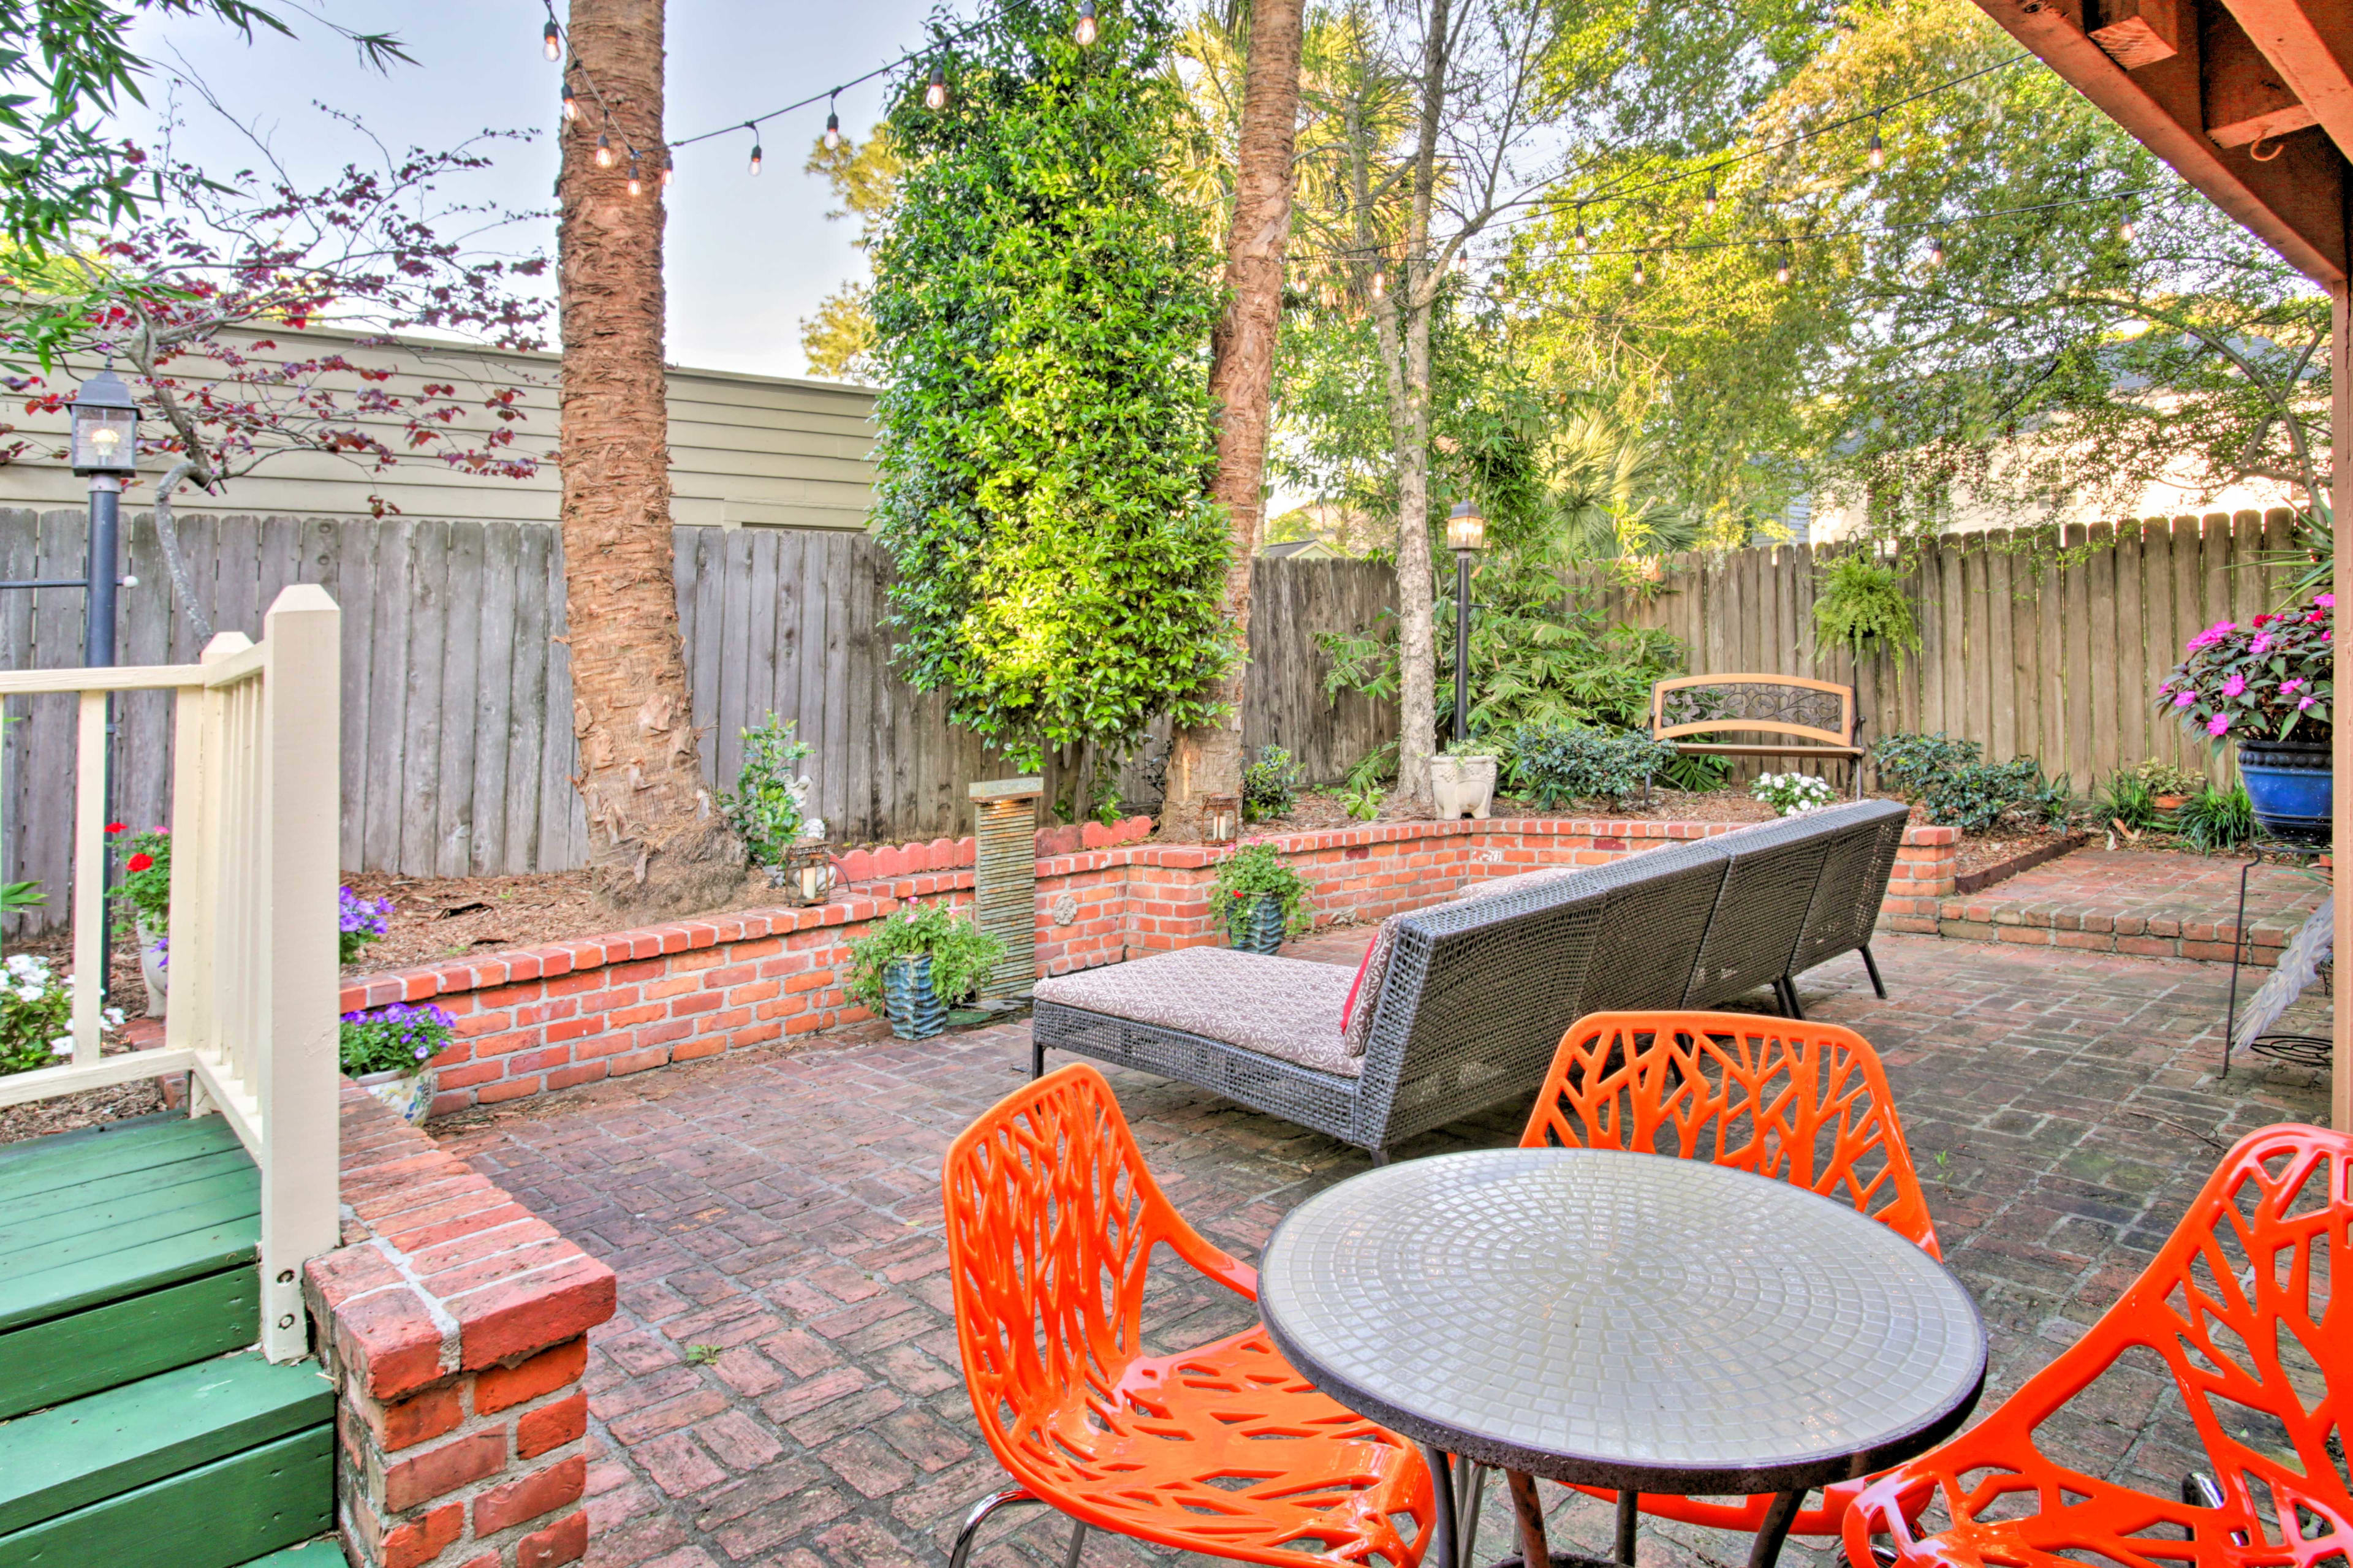 This is the perfect setting for an al fresco meal fresh off the gas grill.